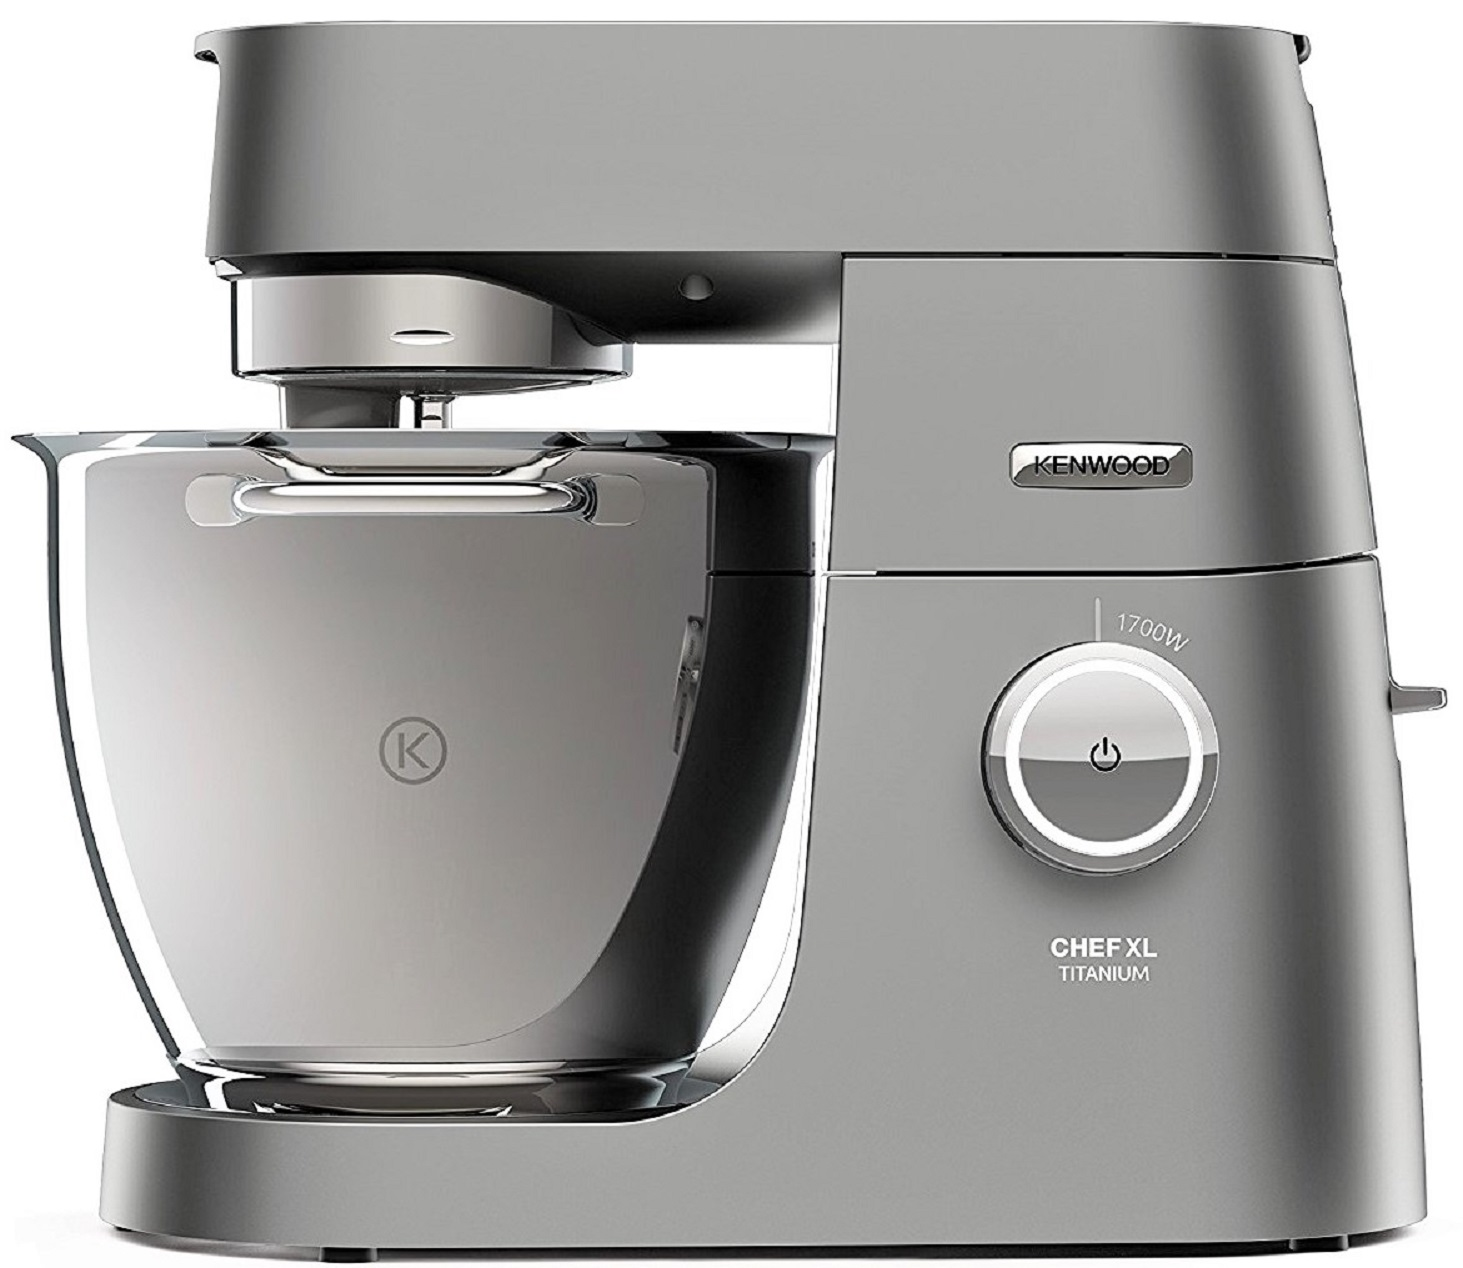 Kenwood kvl8300s compact chef titanium xl 6 7l food for Cuisson vapeur kenwood cooking chef